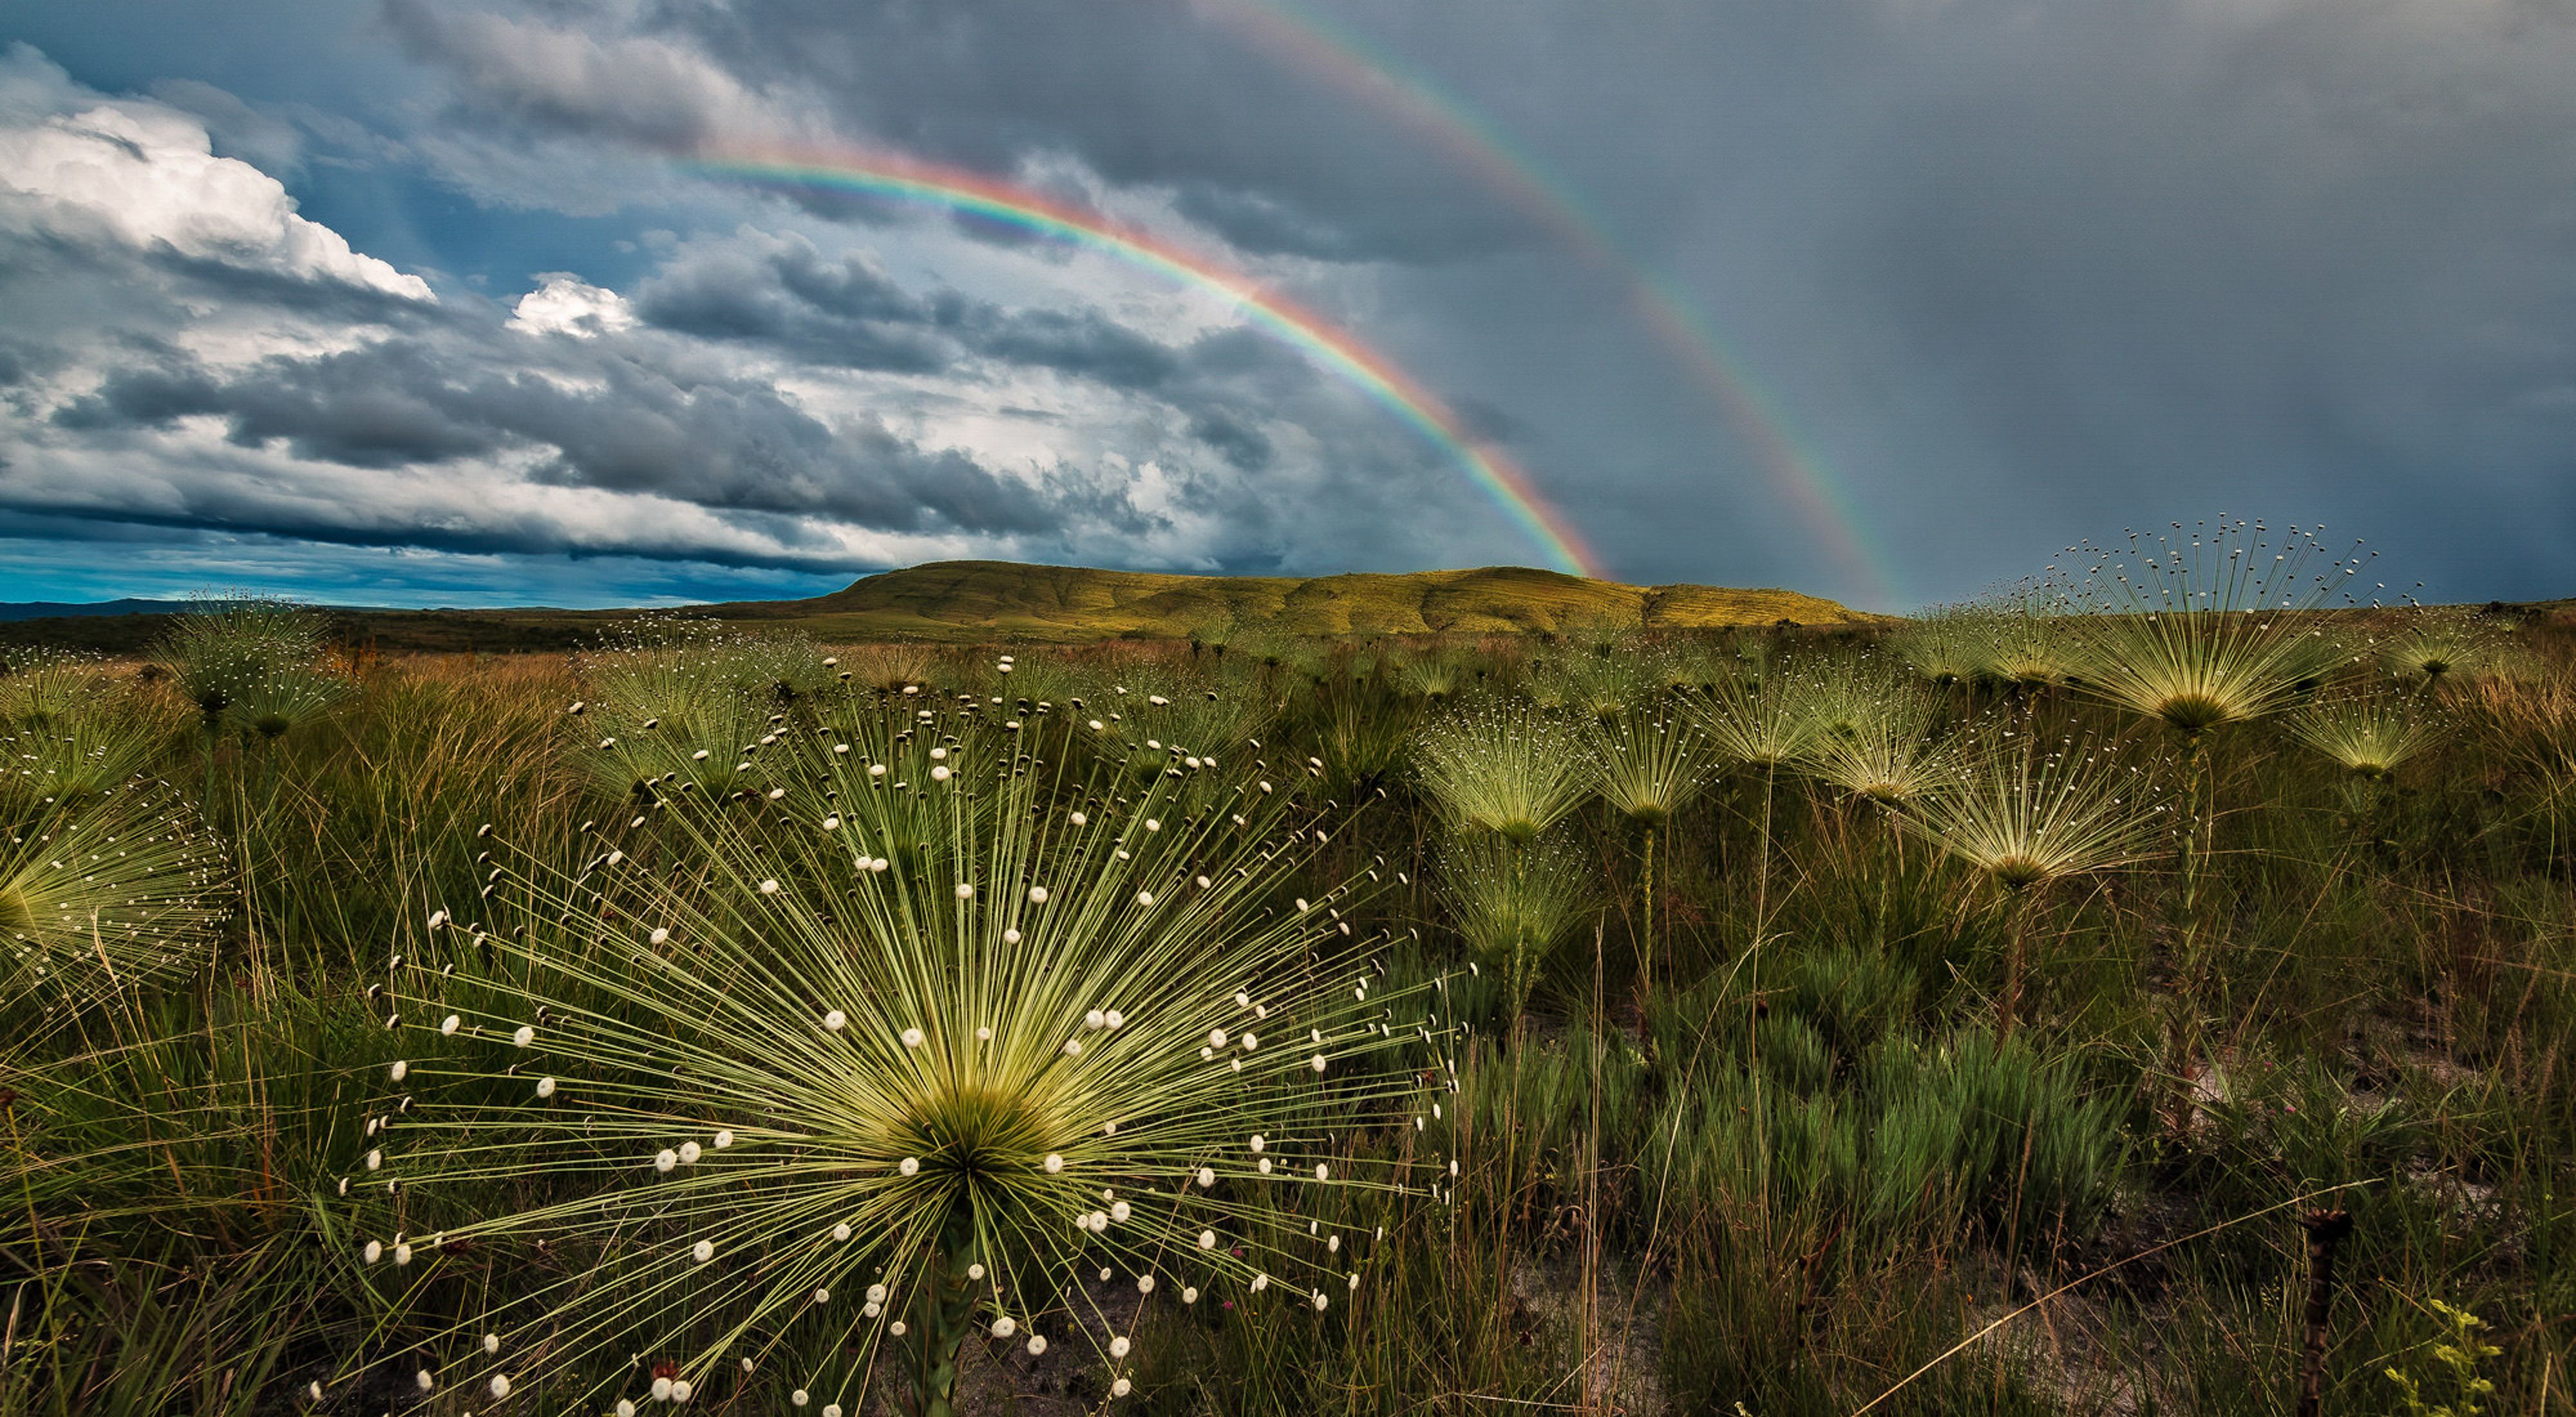 A close up of Cerrado grasslands with a view of hills and a double rainbow in the distance.